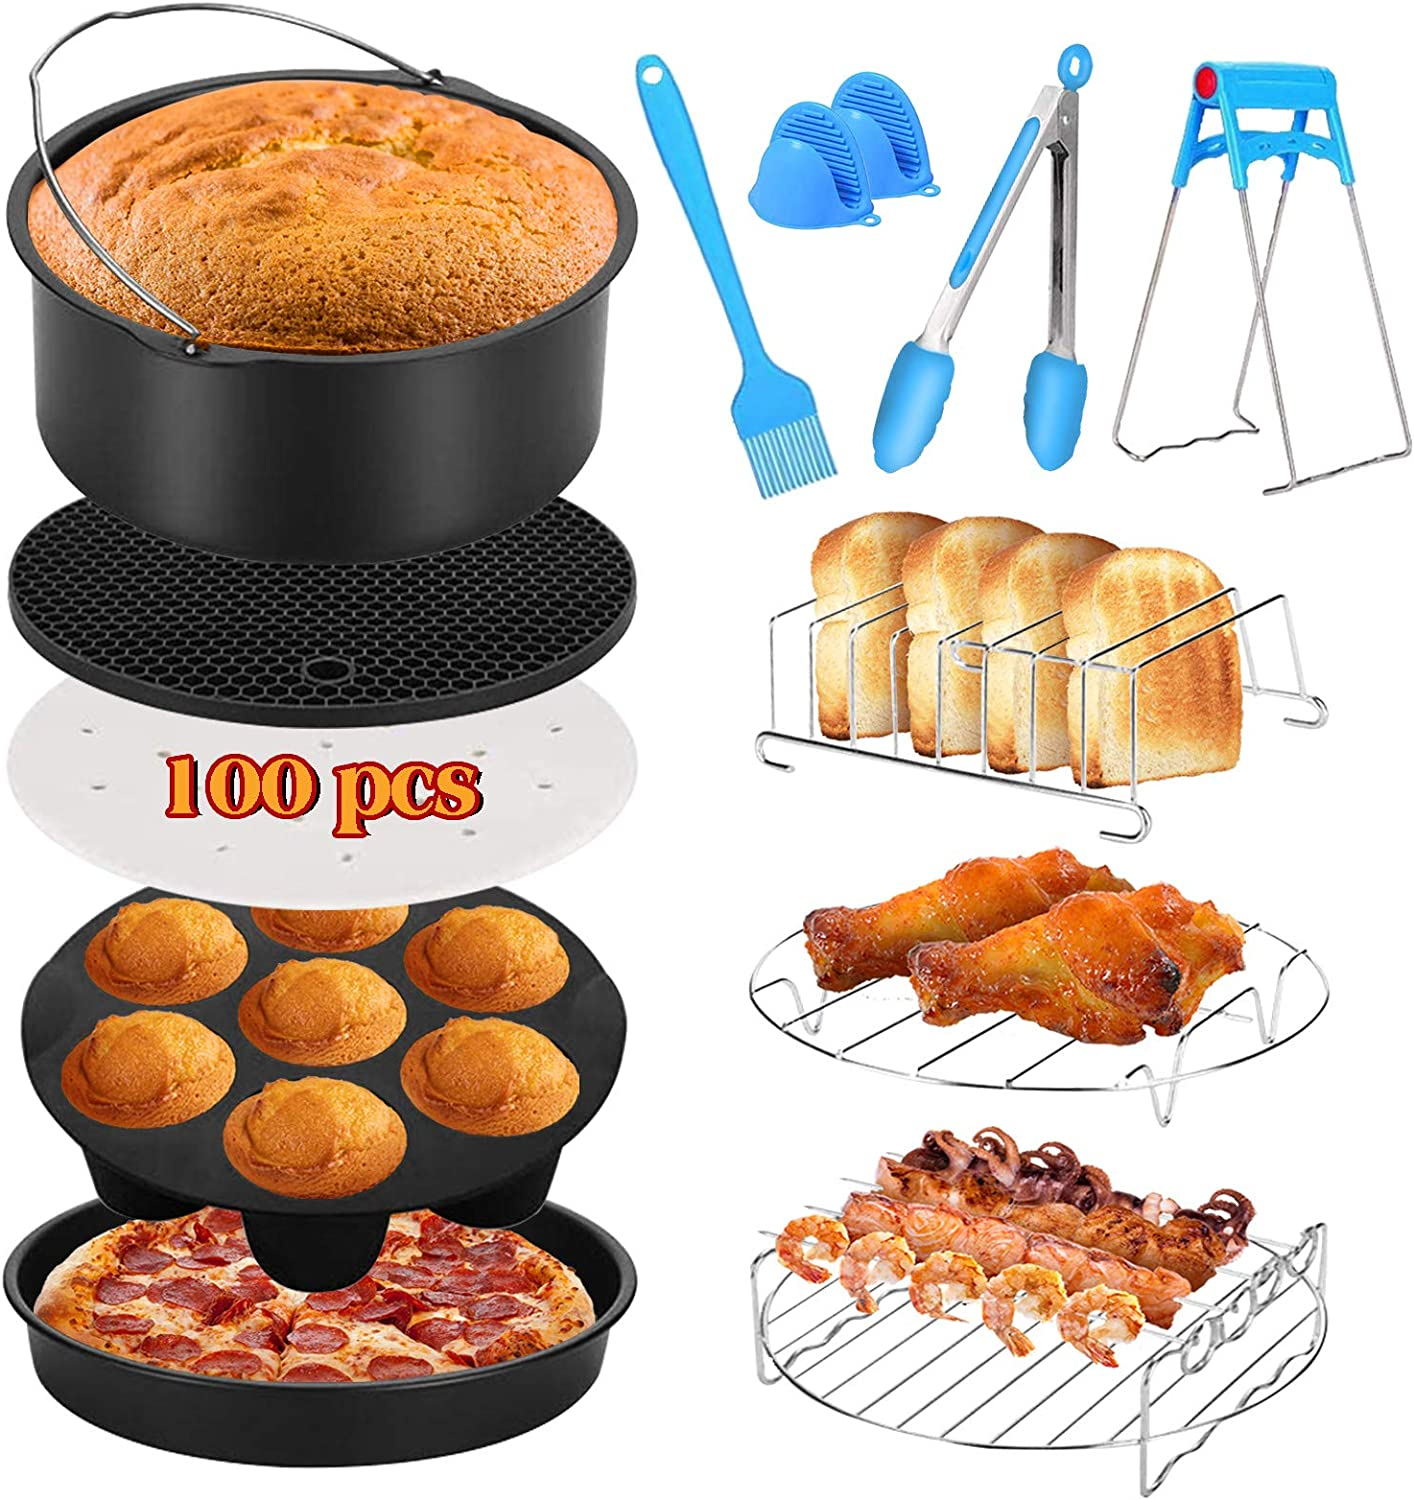 CrownVirt Air Fryer Accessories Set of 12 Fit All 4.2Qt-5.8Qt Air Fryers,With 7 Inch Cake Pan, Pizza Pan,Skewer Rack,Patty paper (100pc).Non stick pot,Safe And Harmless,Can Put in Dishwasher -Black.